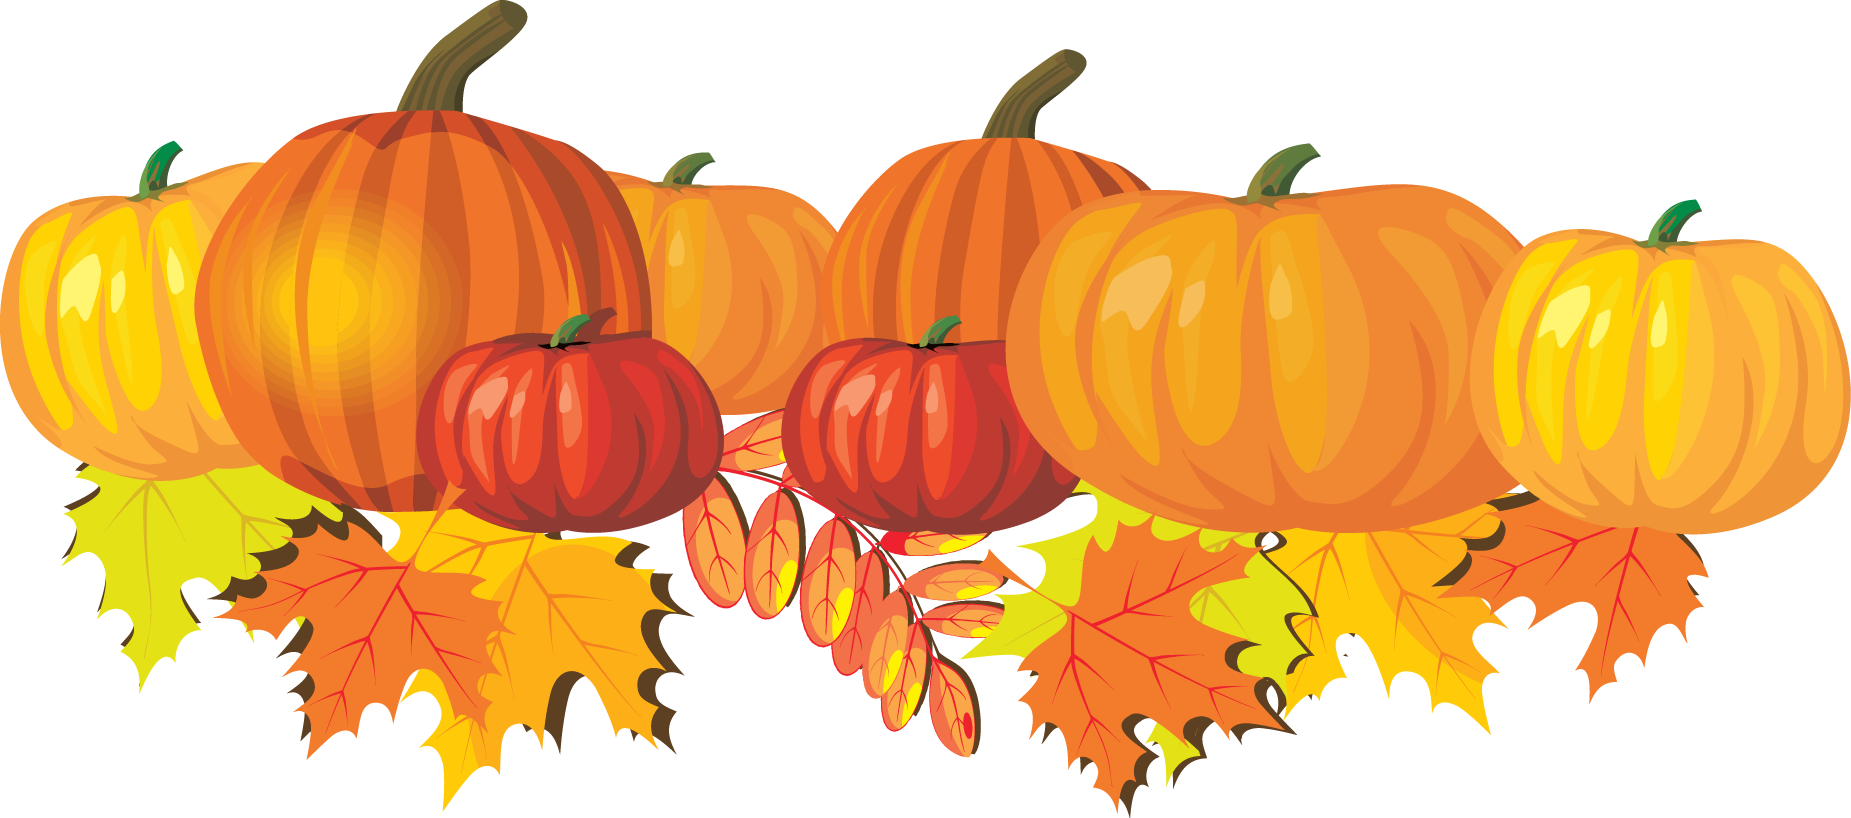 Pumpkins and Leaves Clip Art | Fall pictures with pumpkins, Fall clip art, Pumpkin